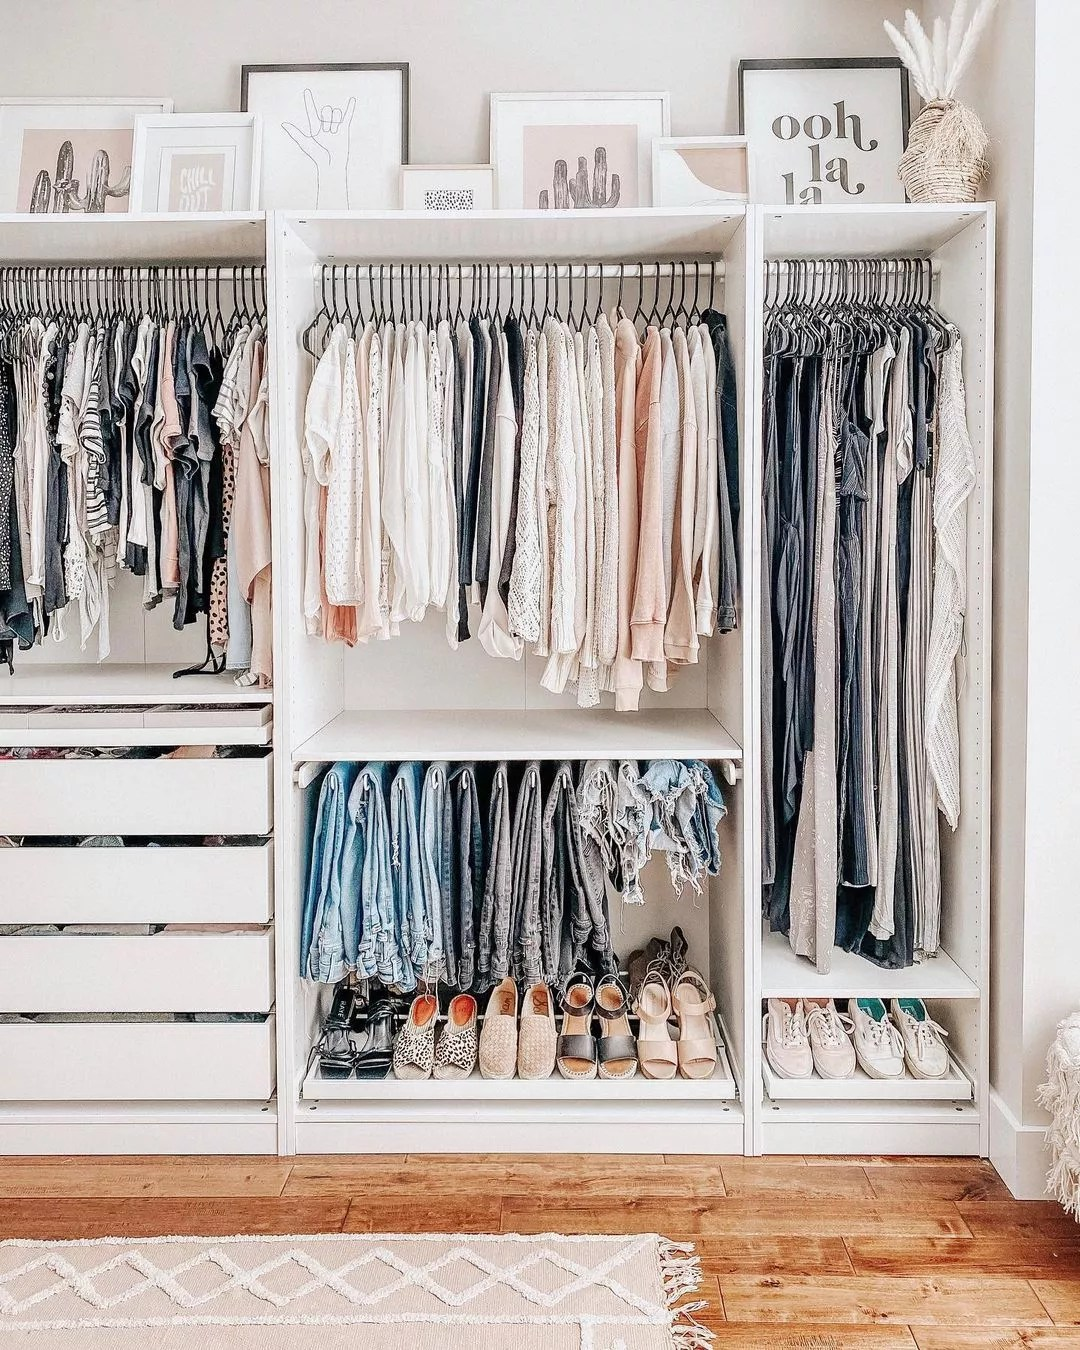 A nicely organized white closet with shoes and clothes. Photo by Instagram user @bymeghang